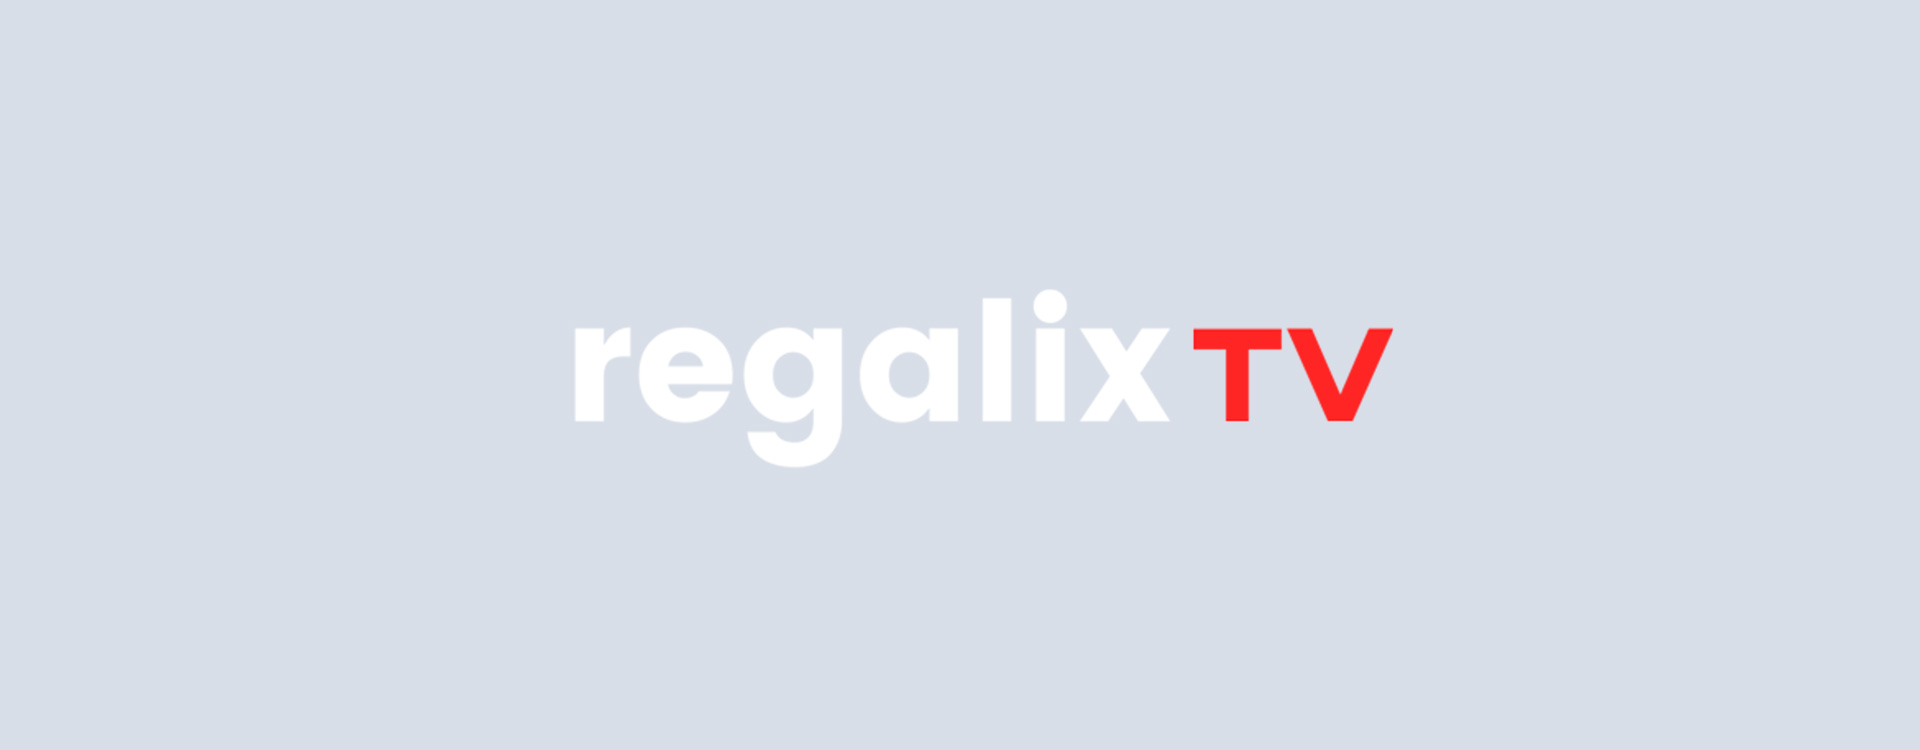 Regalix TV logo